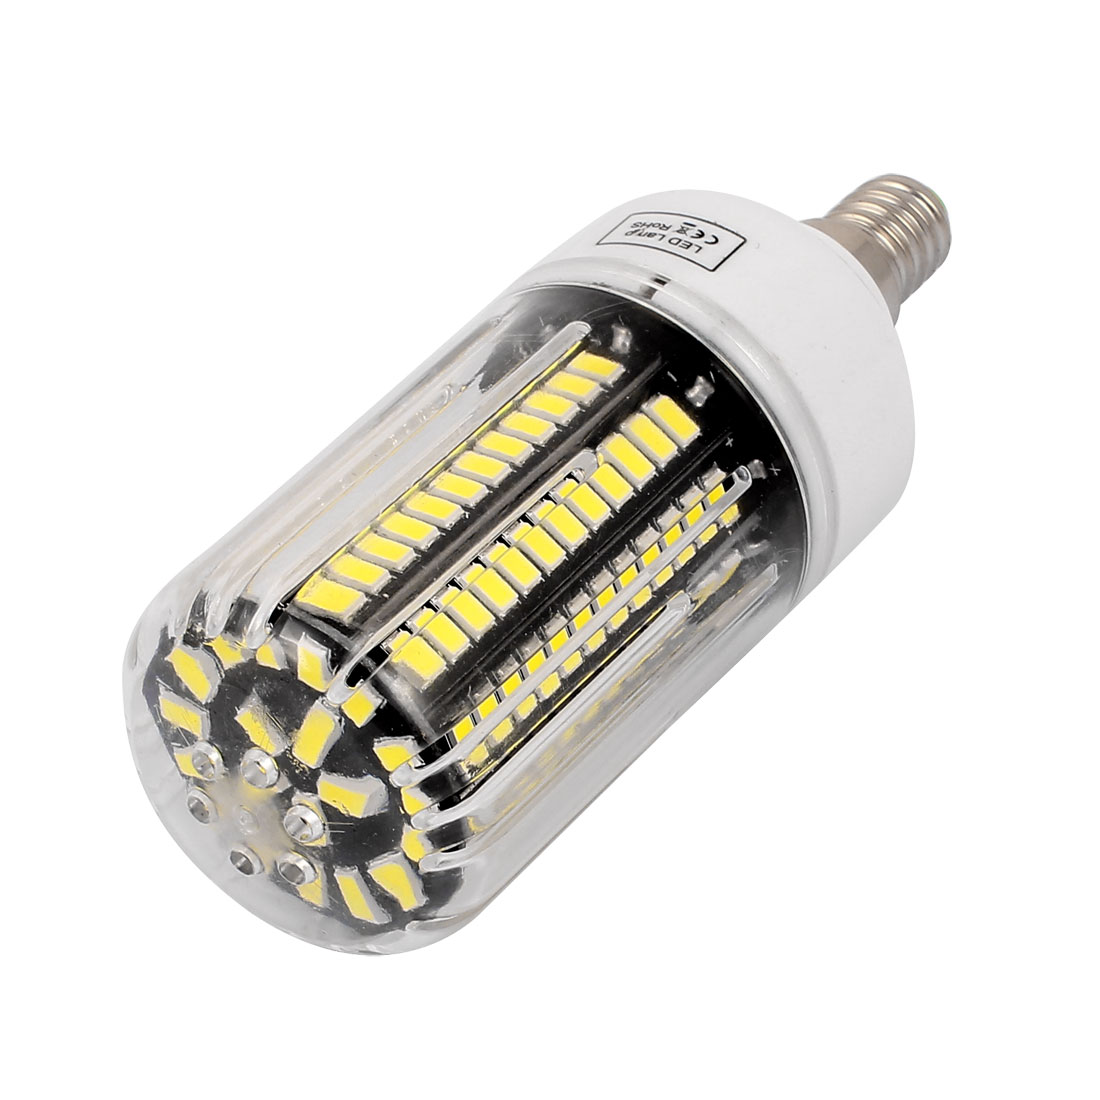 85V~265V 18W 140 x 5736SMD E14 LED Corn Bulb Light Lamp Energy Saving Pure White